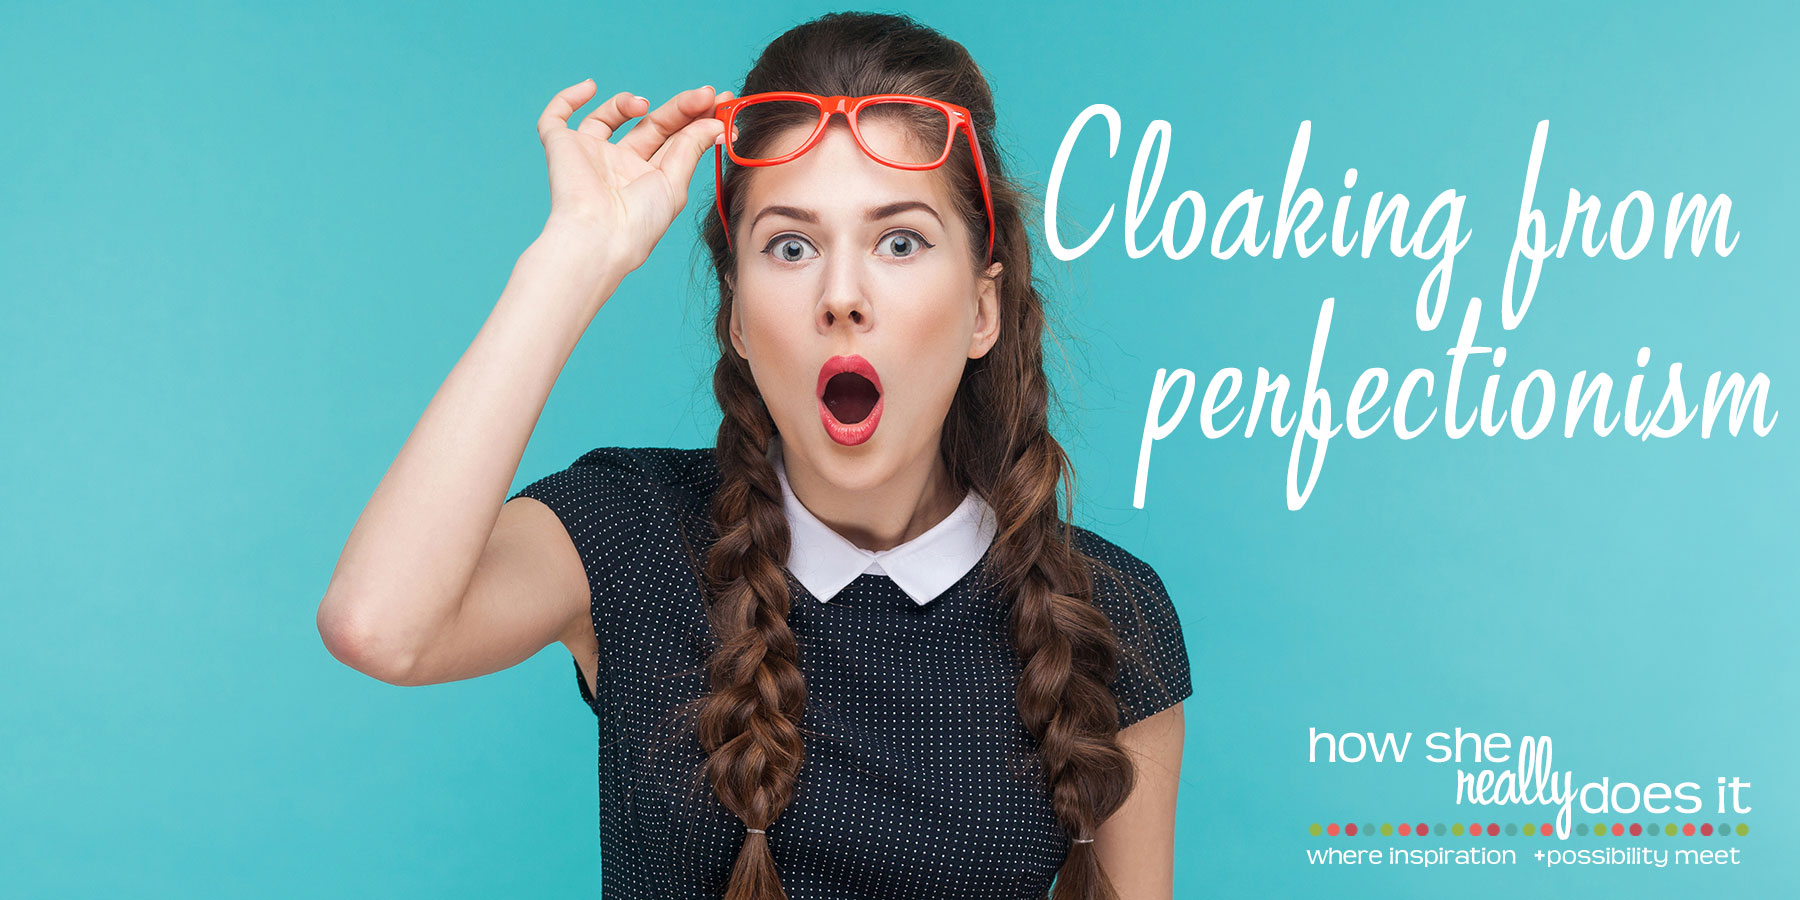 Cloaking from perfectionism